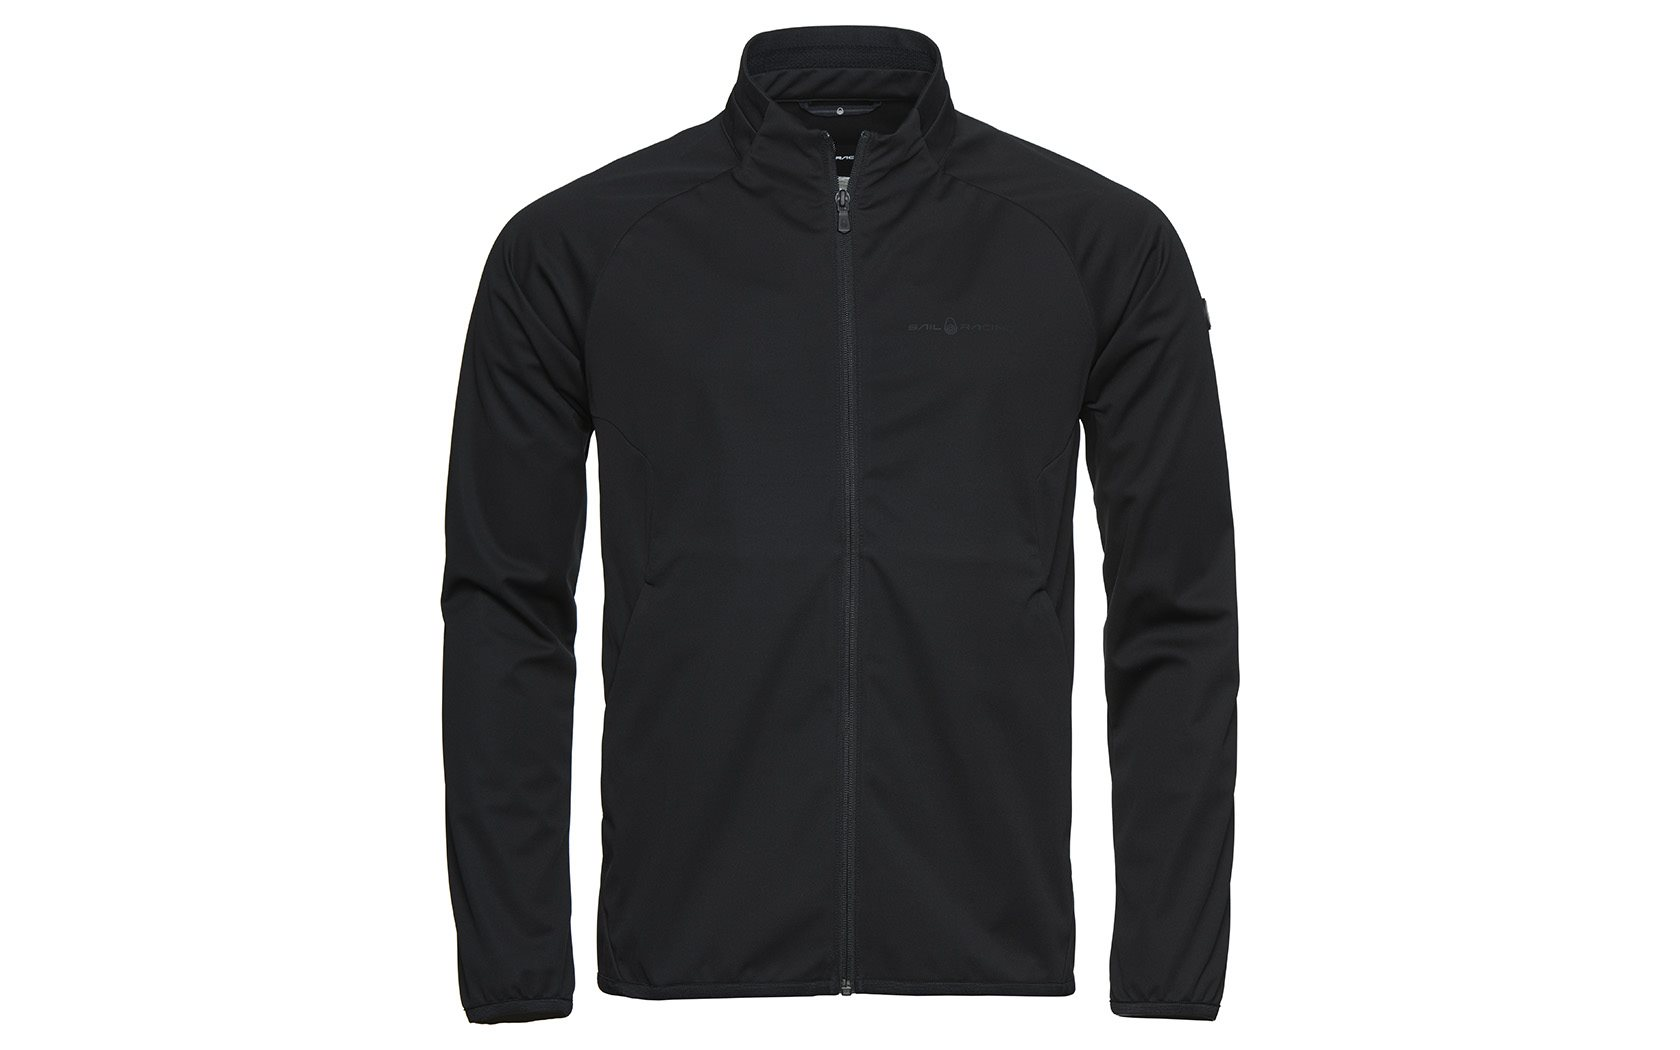 BOWMAN SOFTSHELL JACKET